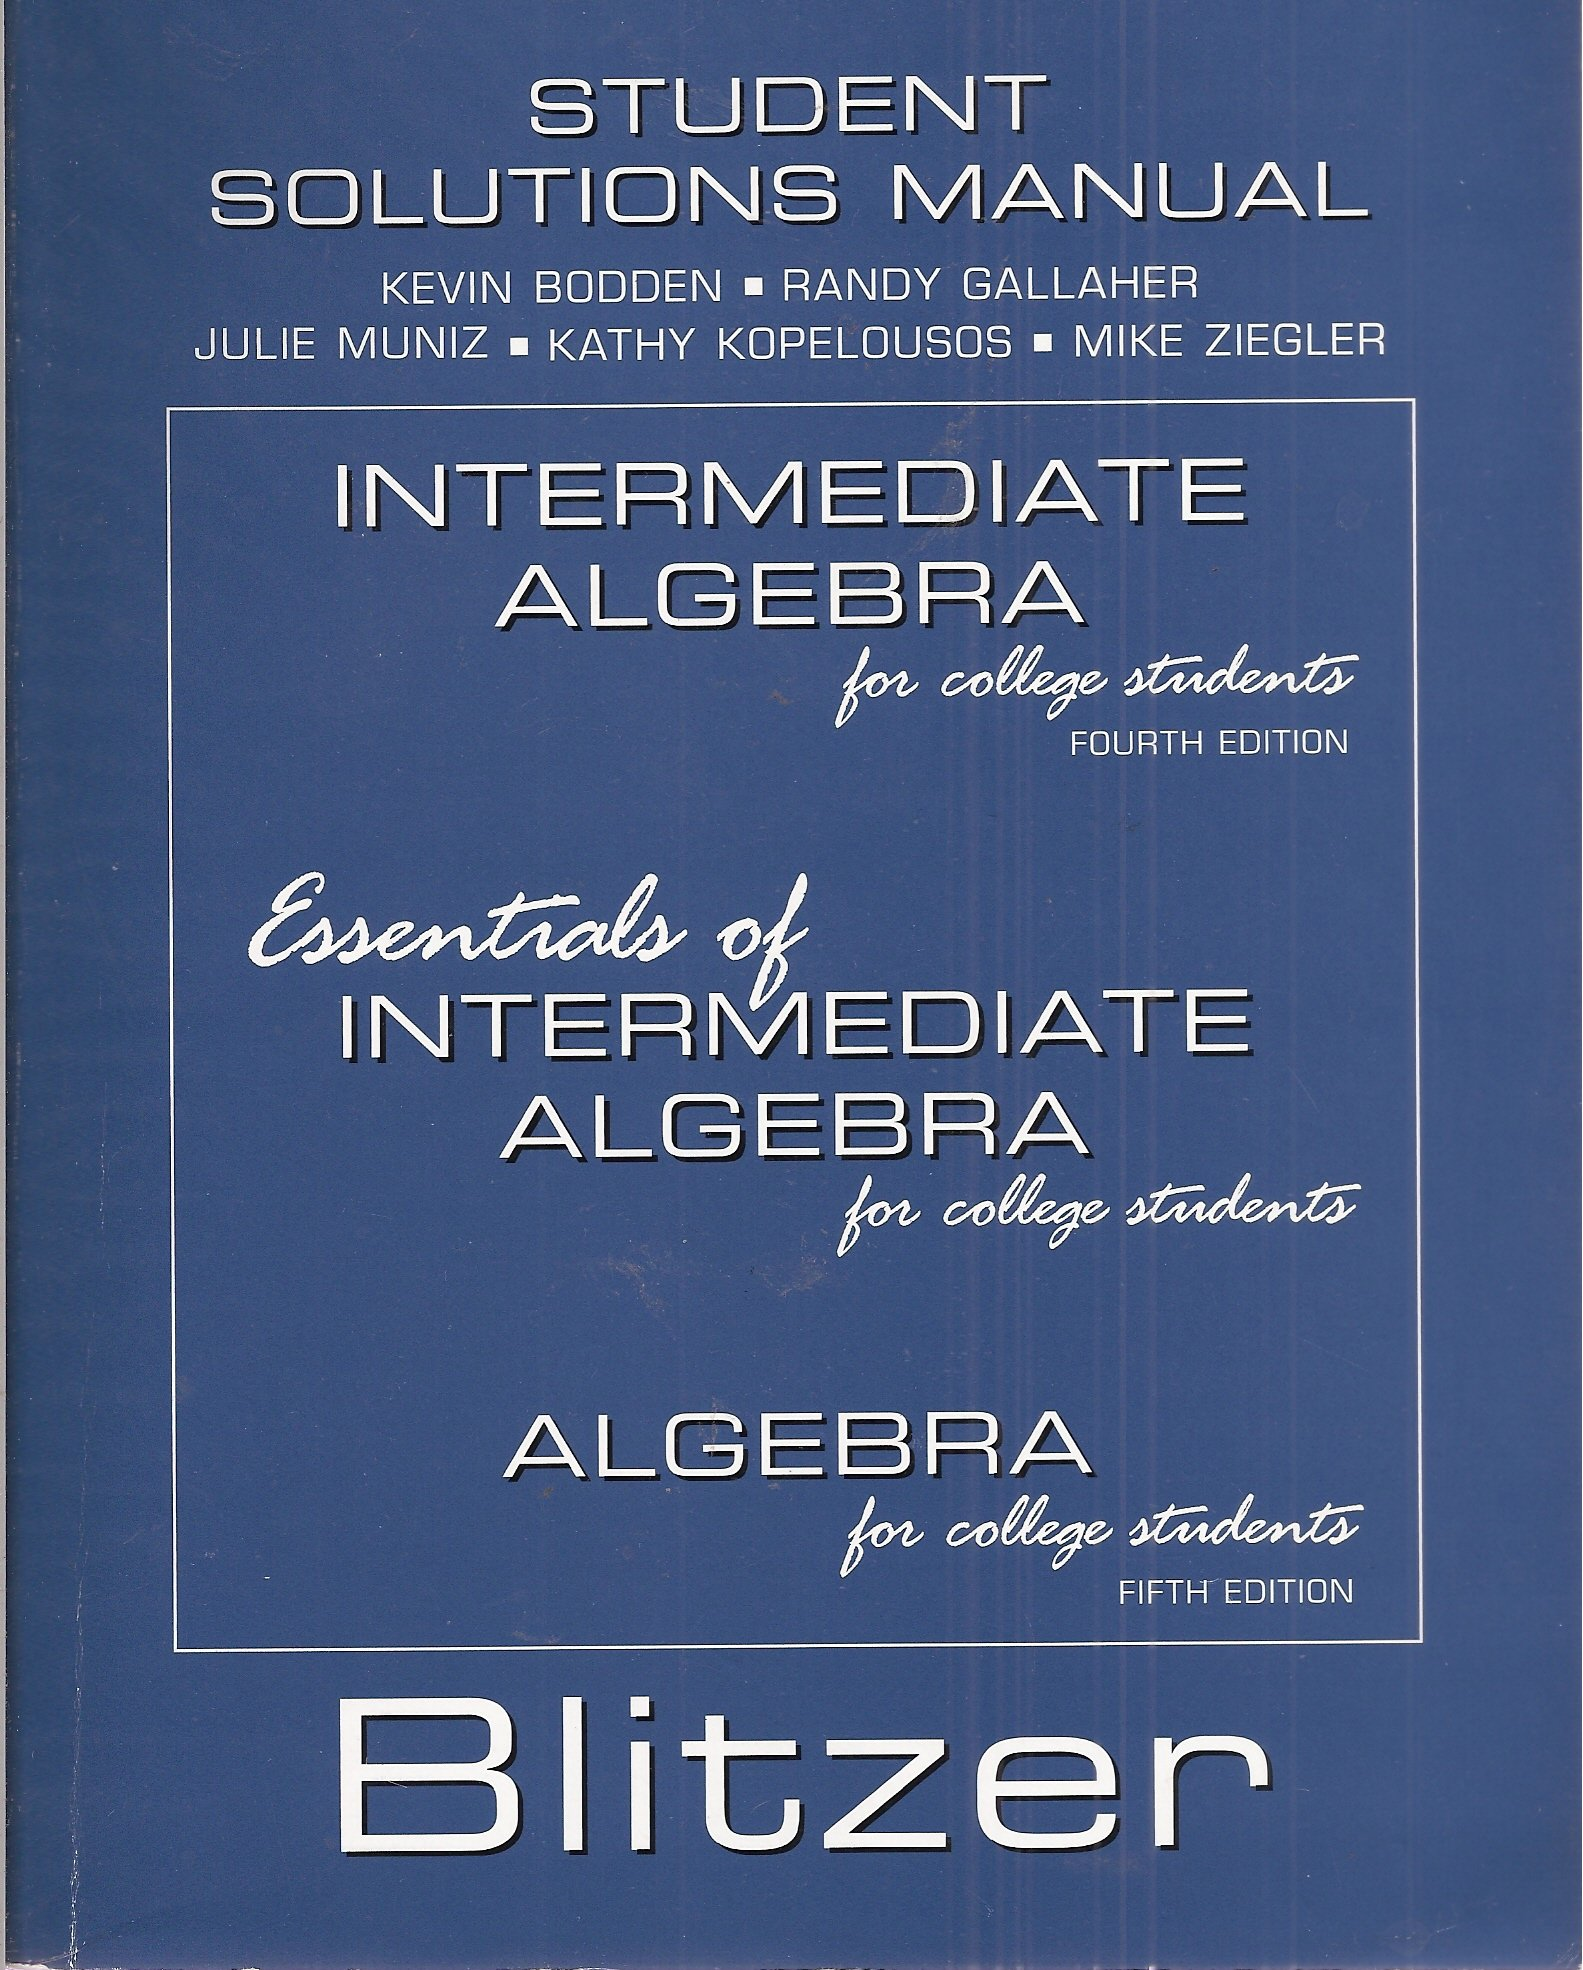 Student Solutions Manual: Intermediate Algebra for College Students Fourth  Edition, Essentials of Intermediate Algebra for College Students, ...